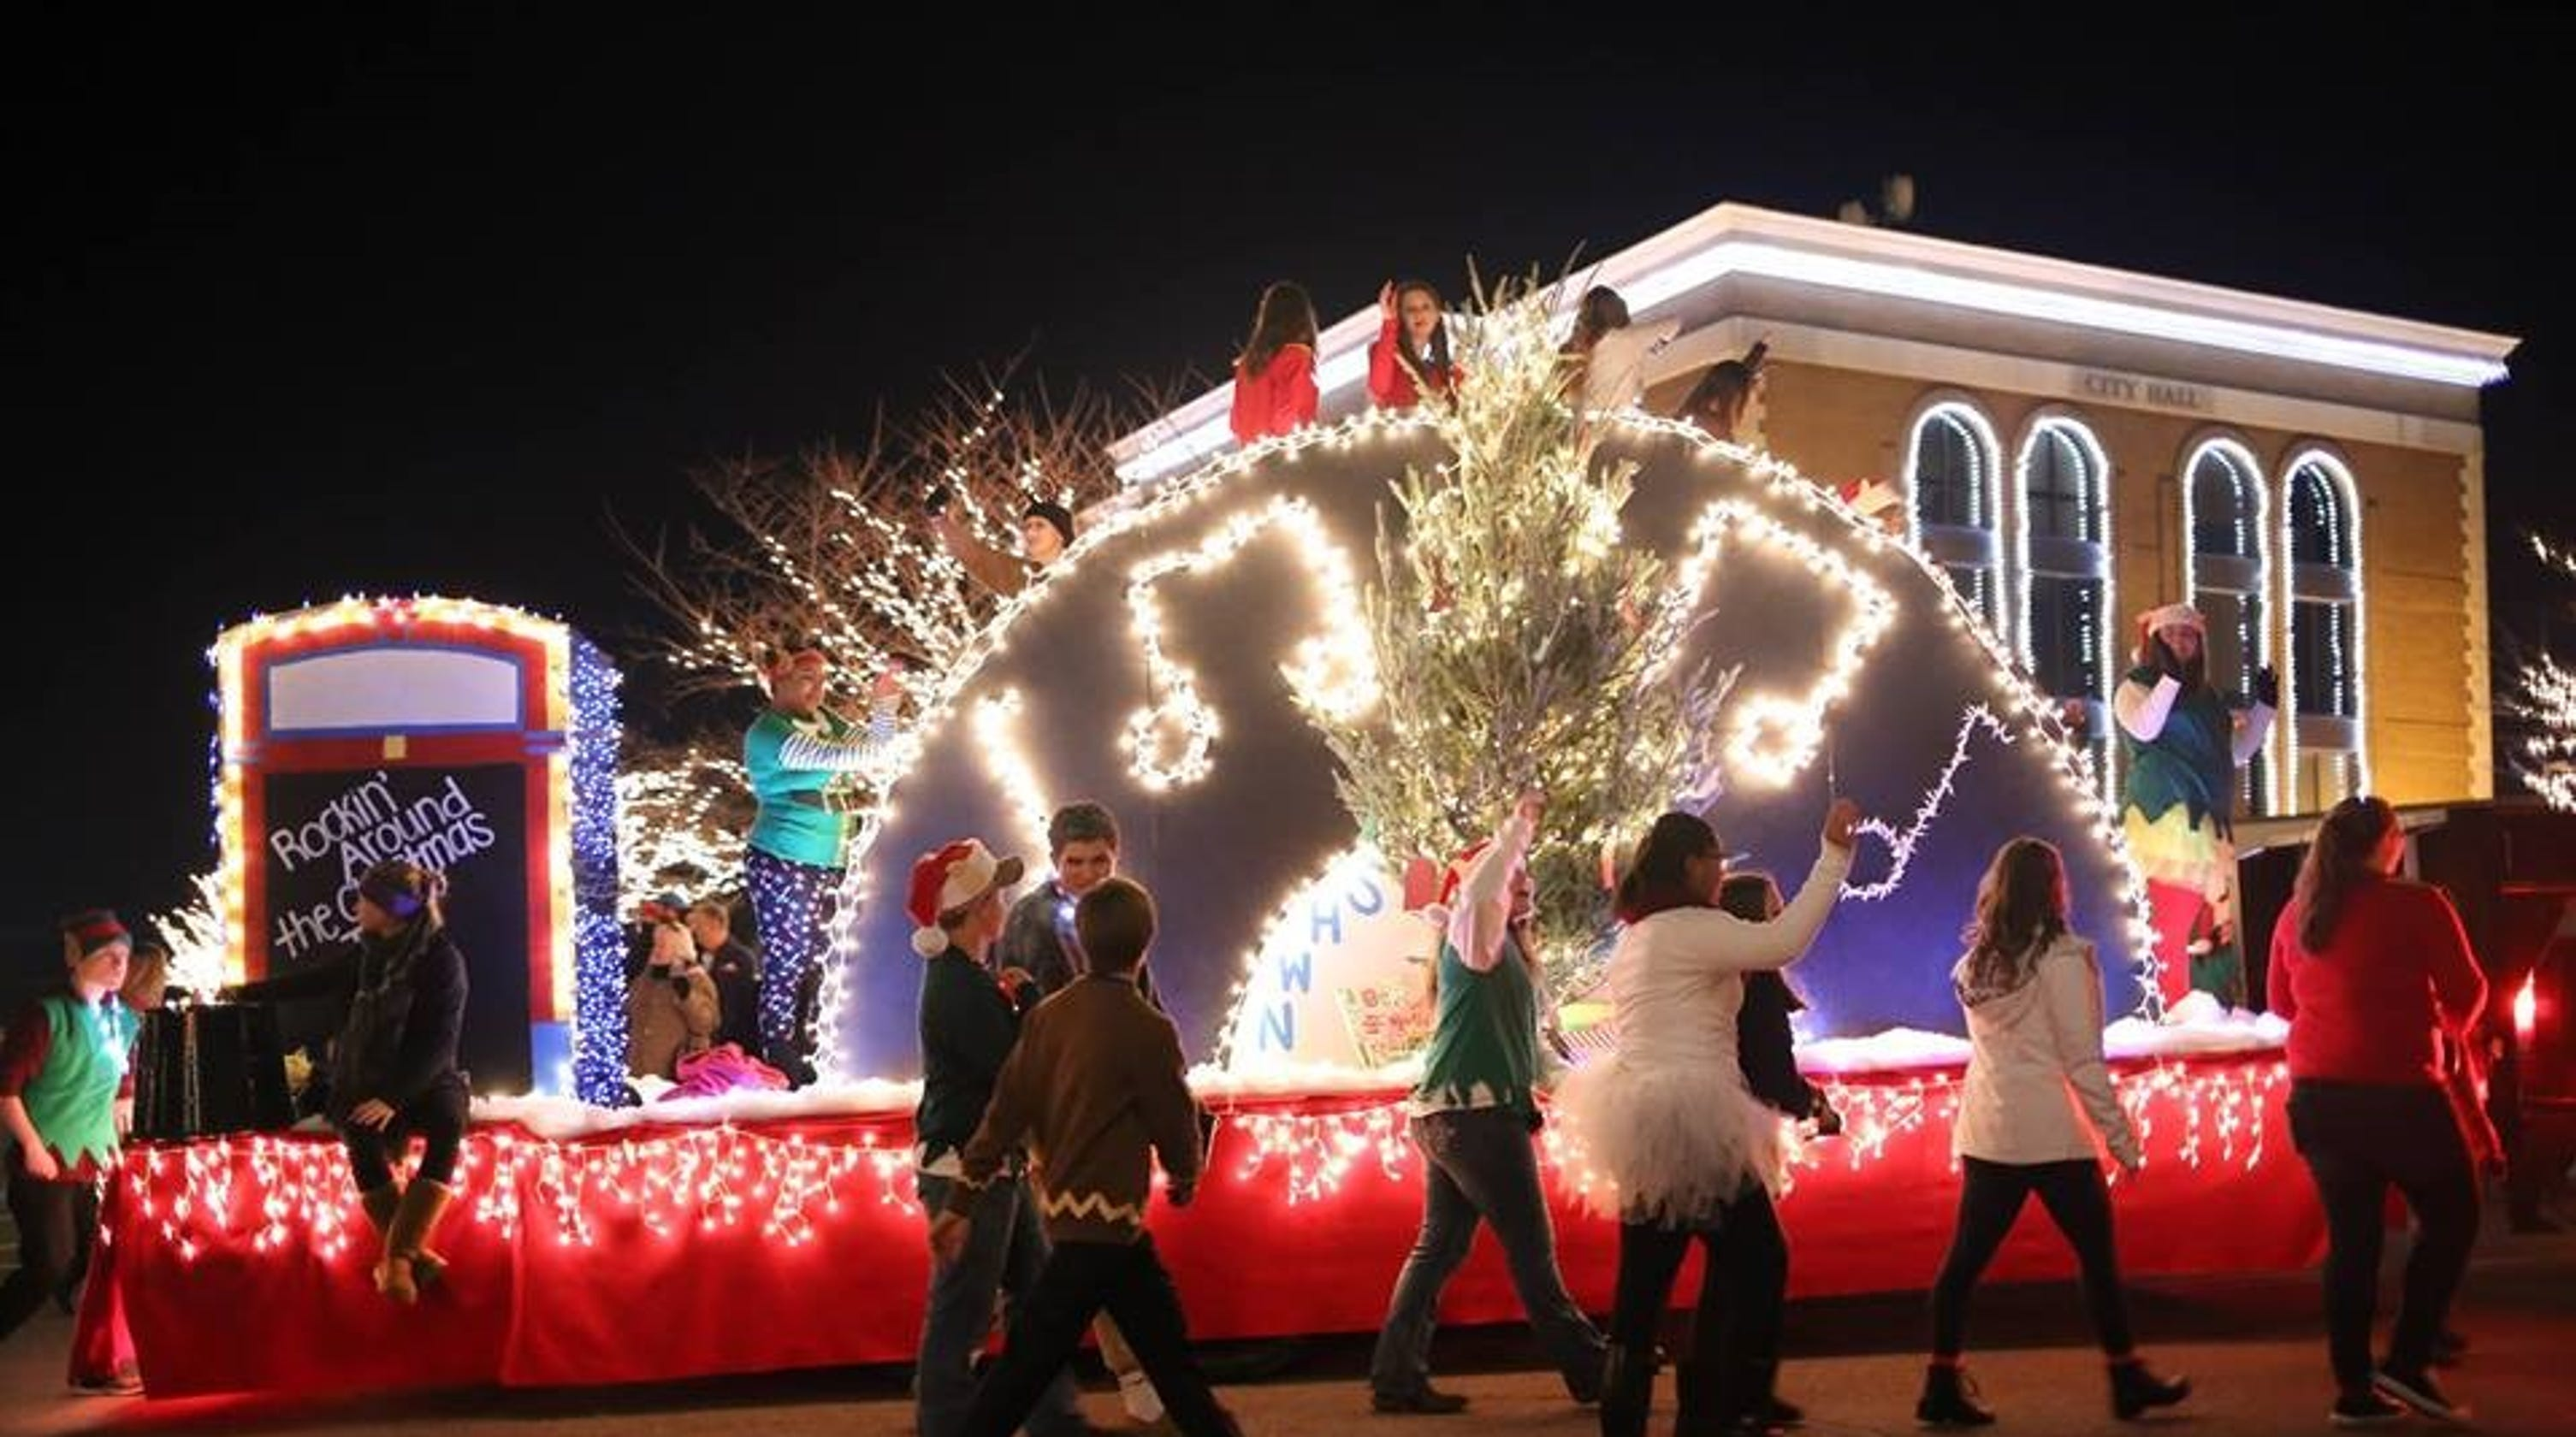 family friendly parades festivals and fun coming up for holidays - Christmas City Of The North Parade